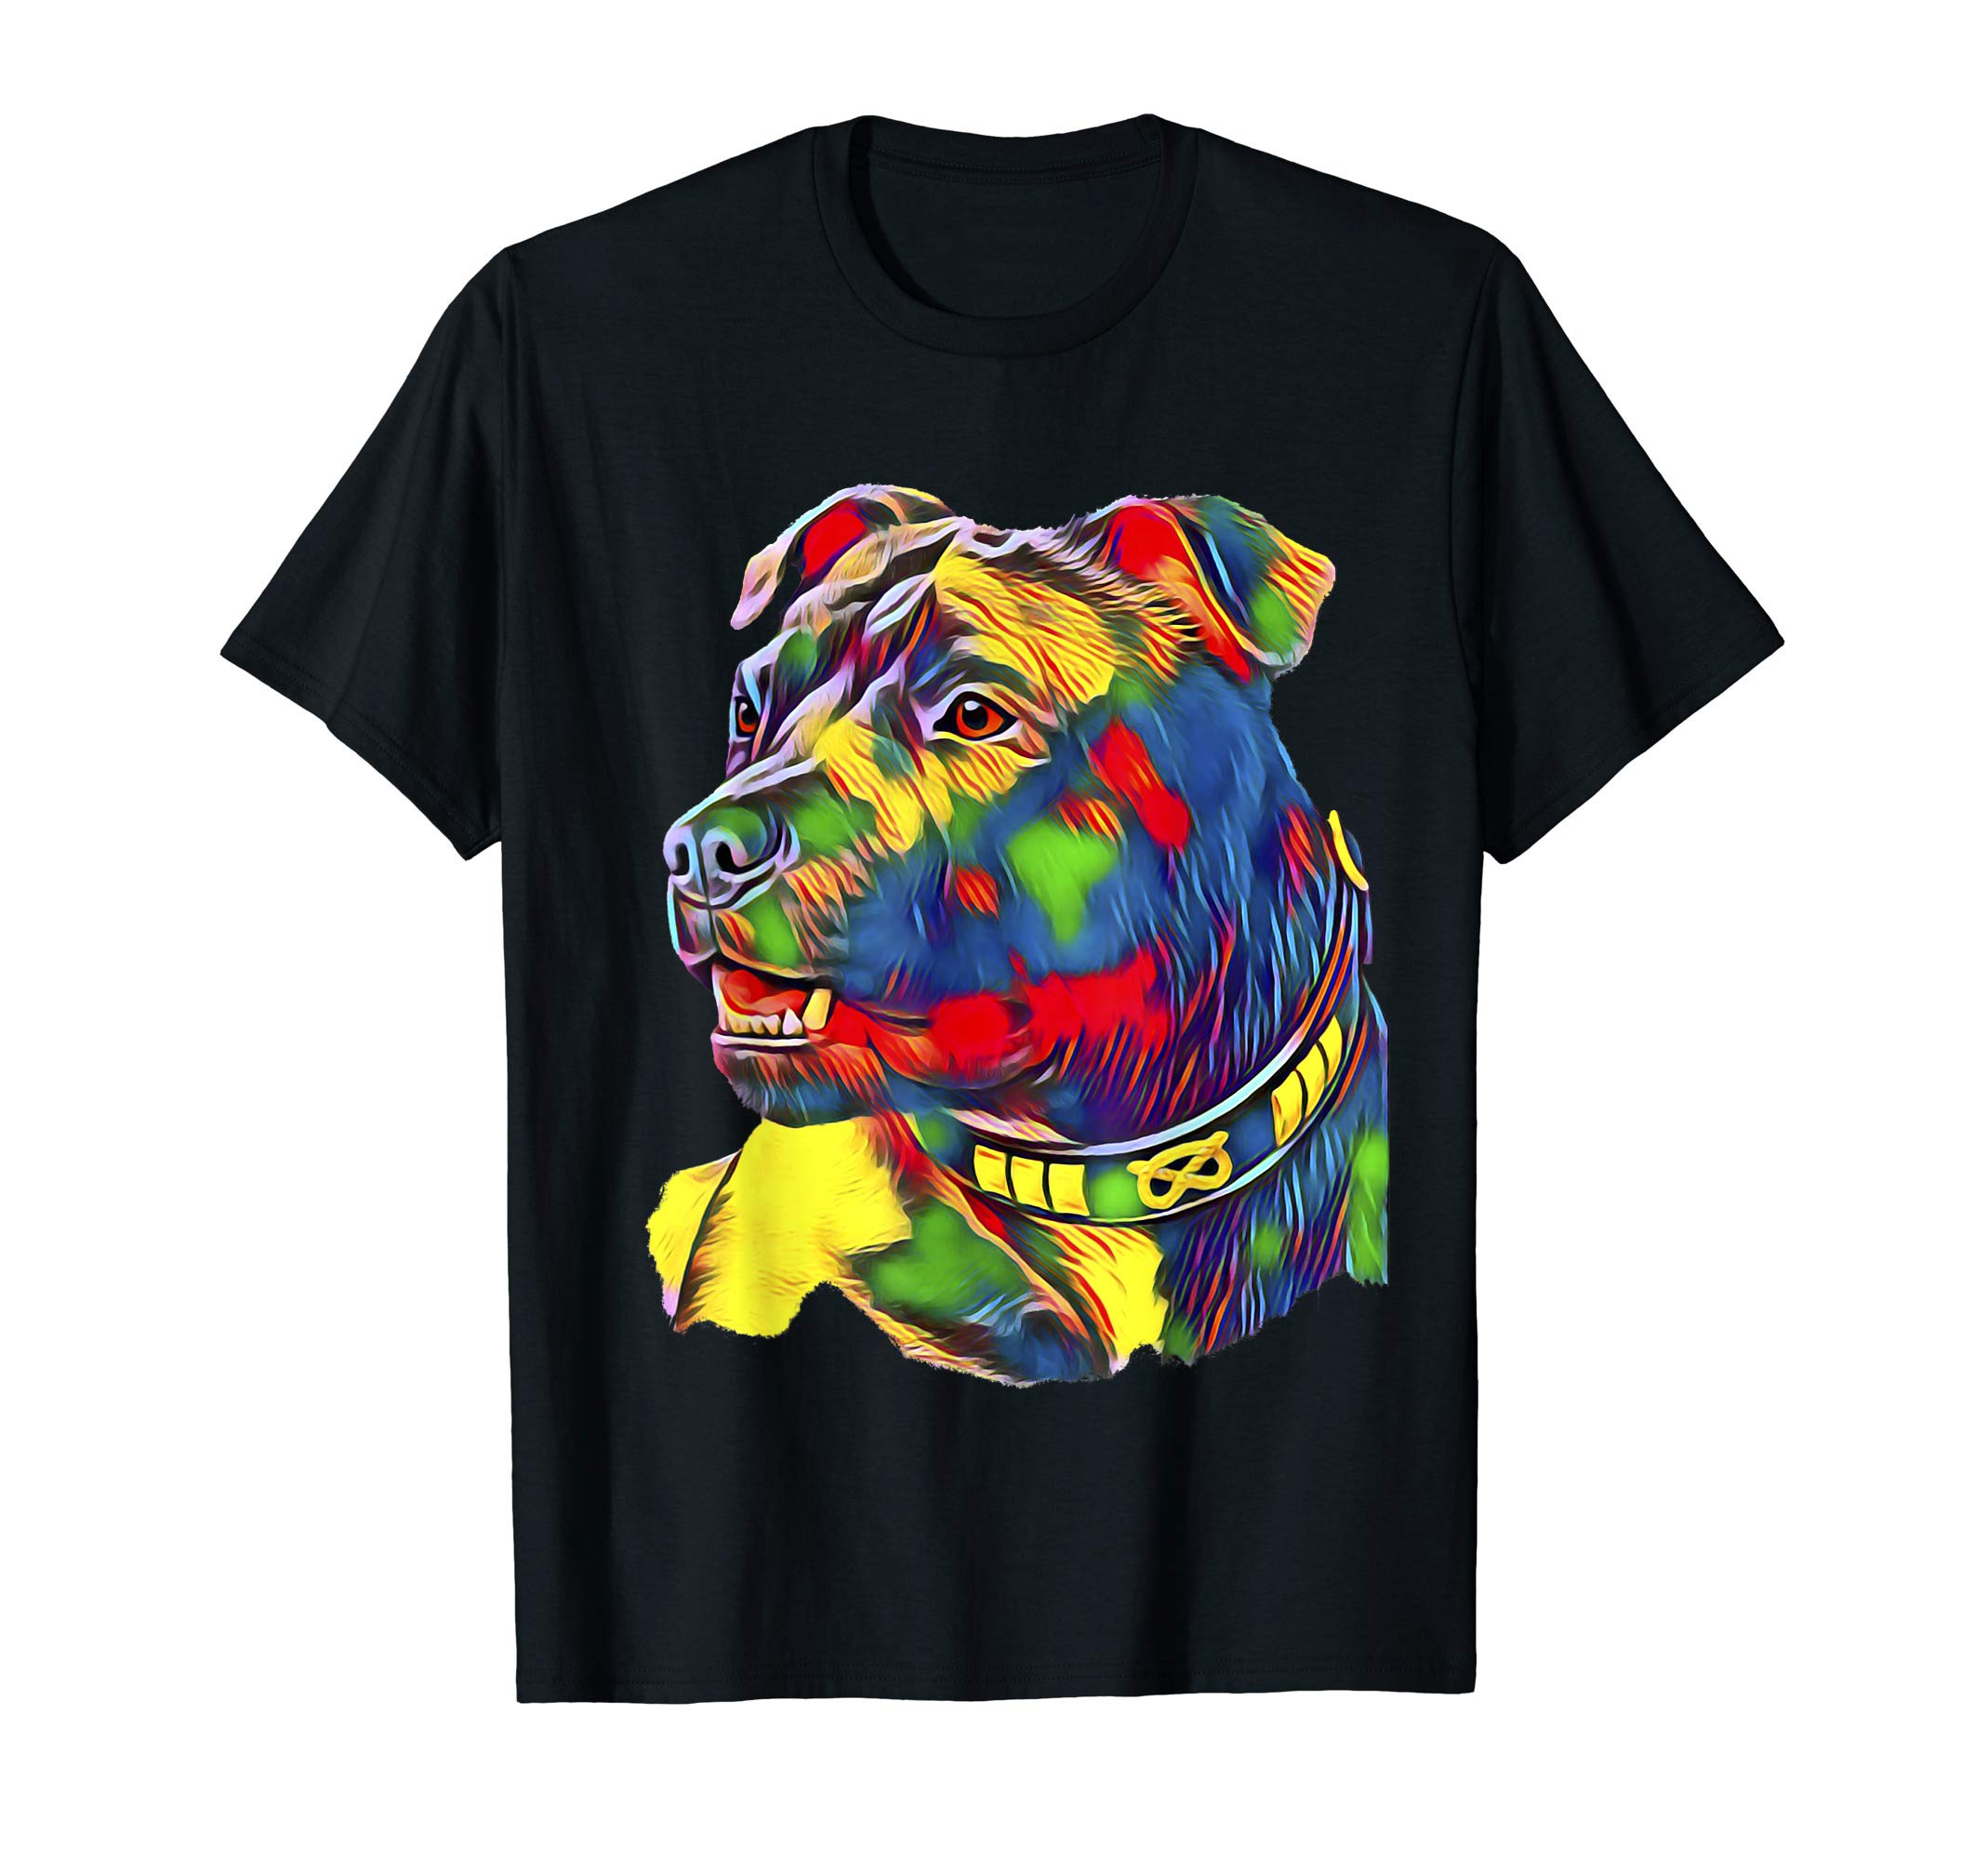 Watercolor Art Colorful American Staffordshire Bull Terrier T-Shirt 1